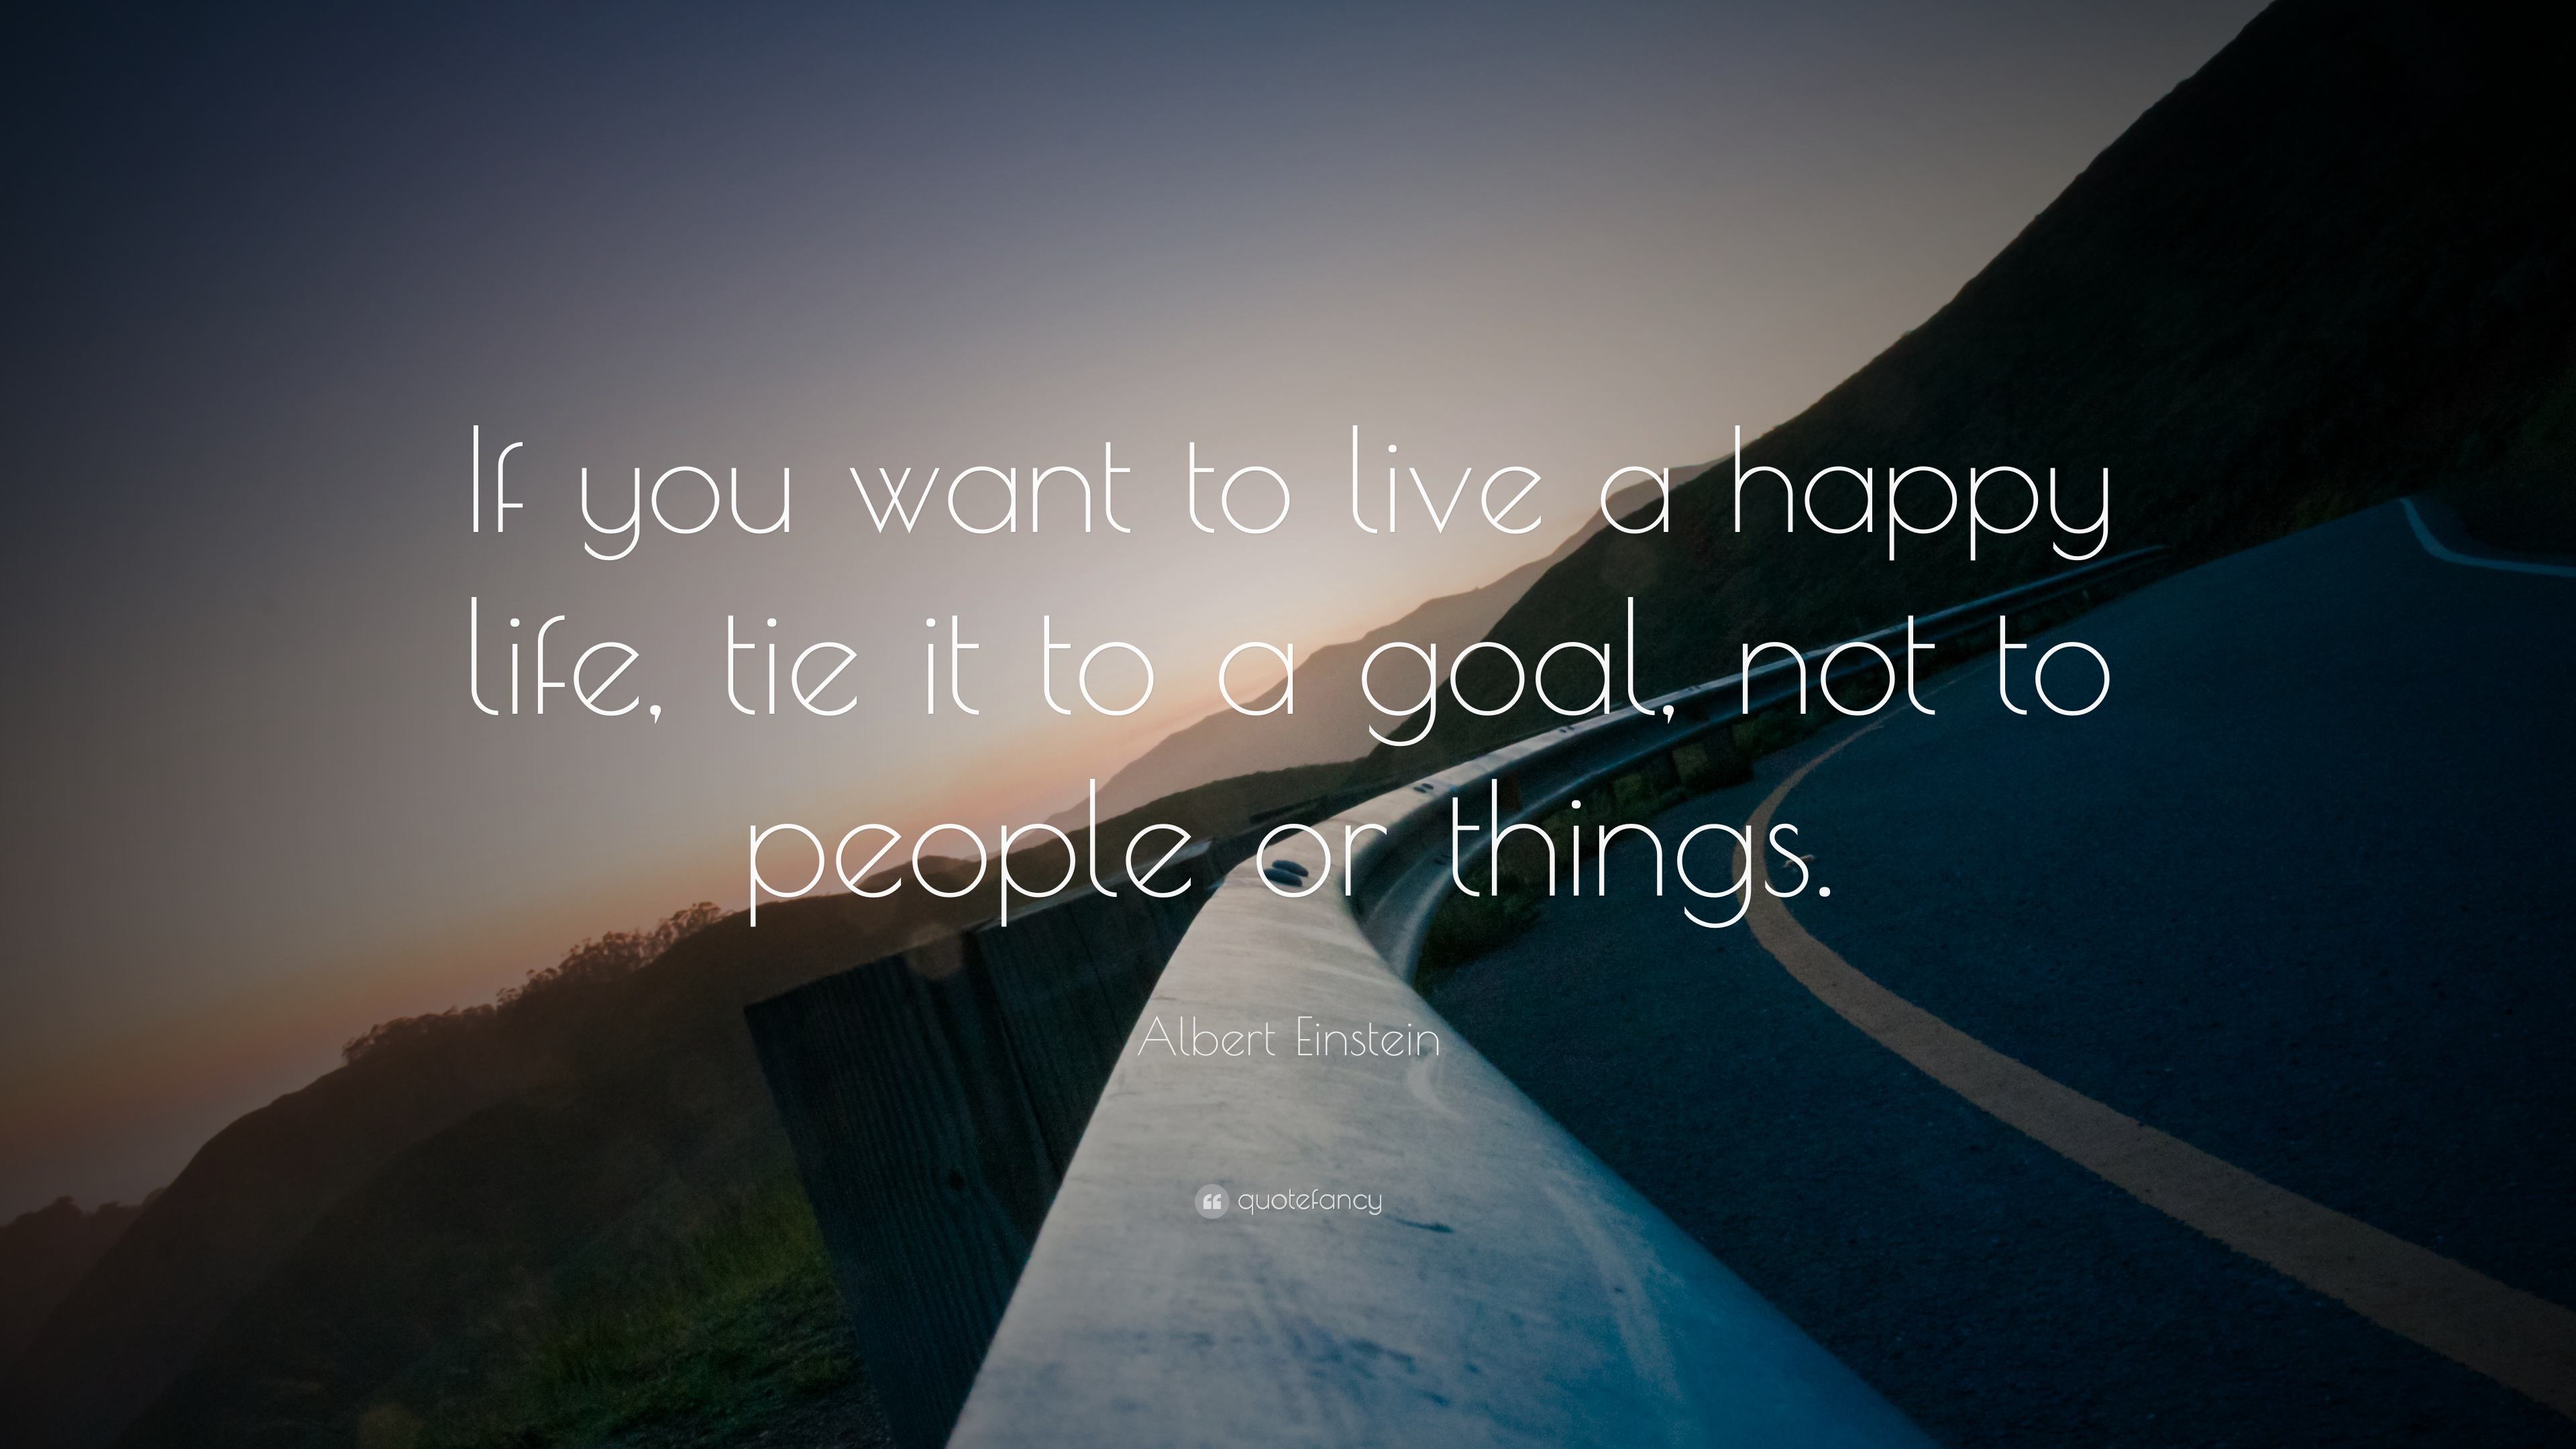 1796-Albert-Einstein-Quote-If-you-want-to-live-a-happy-life-tie-it-to-a.jpg